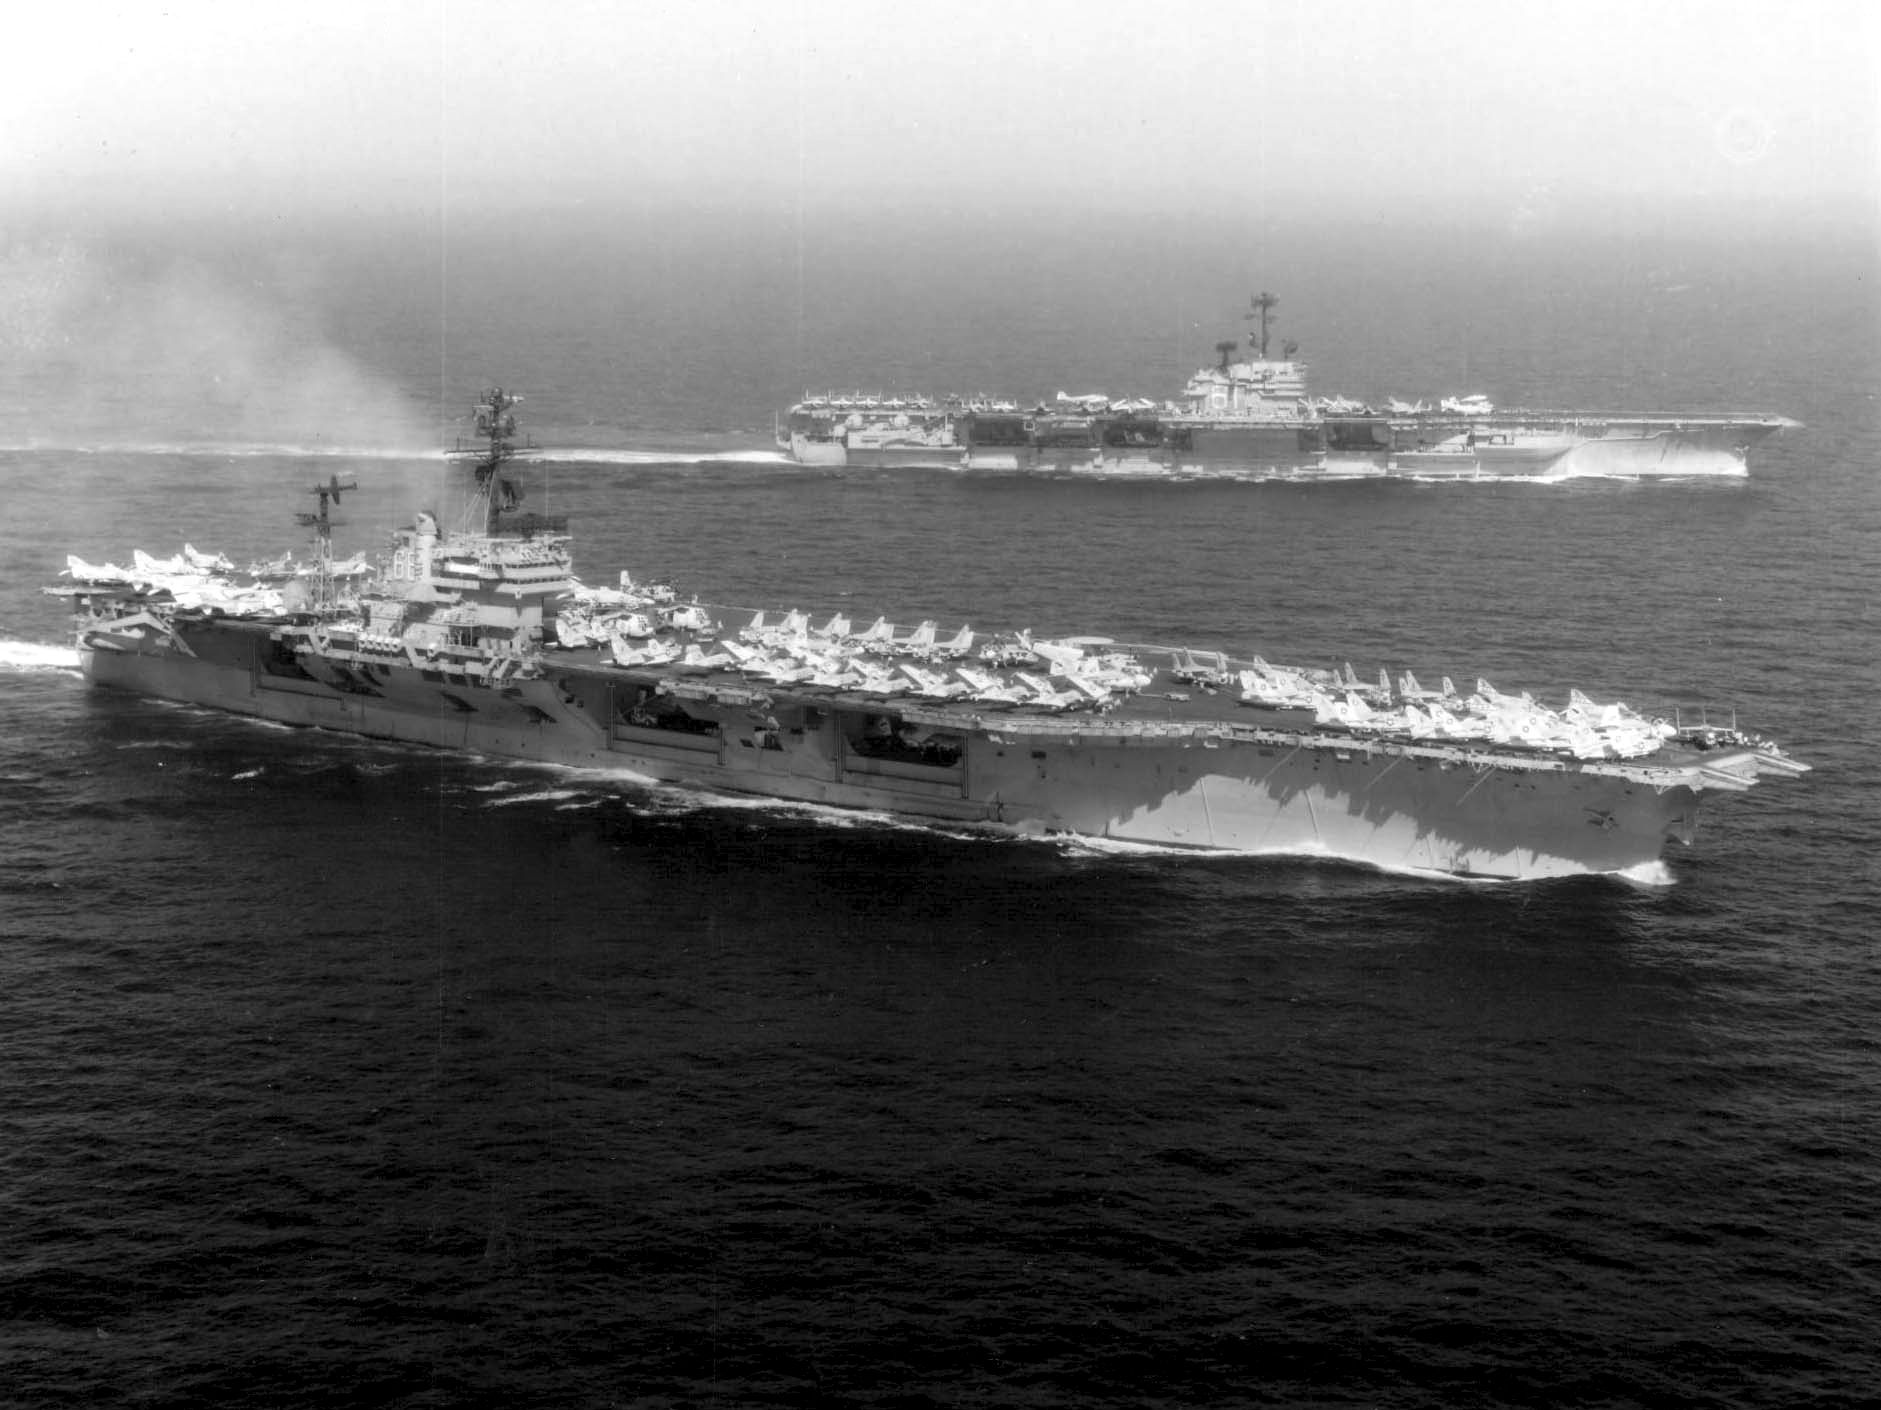 USS America (CVA-66) and Ranger (CVA-61) off Vietnam in 1973 - USS America (CV-66) - Wikipedia, the free encyclopedia